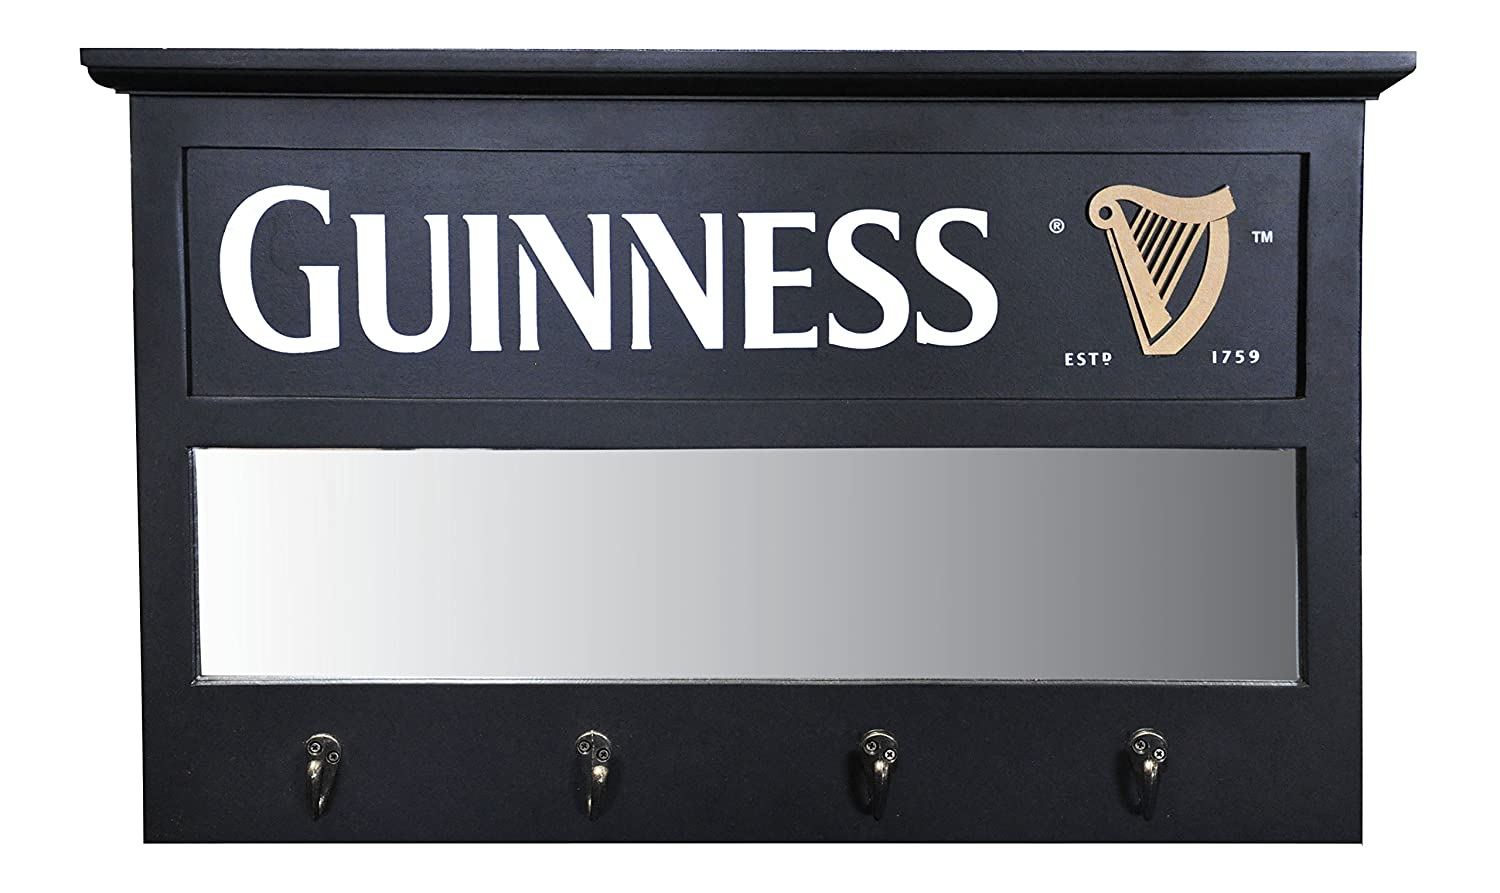 Guinness Coat Hanger with Mirror Insert Guinness Official Merchandise GNS1014